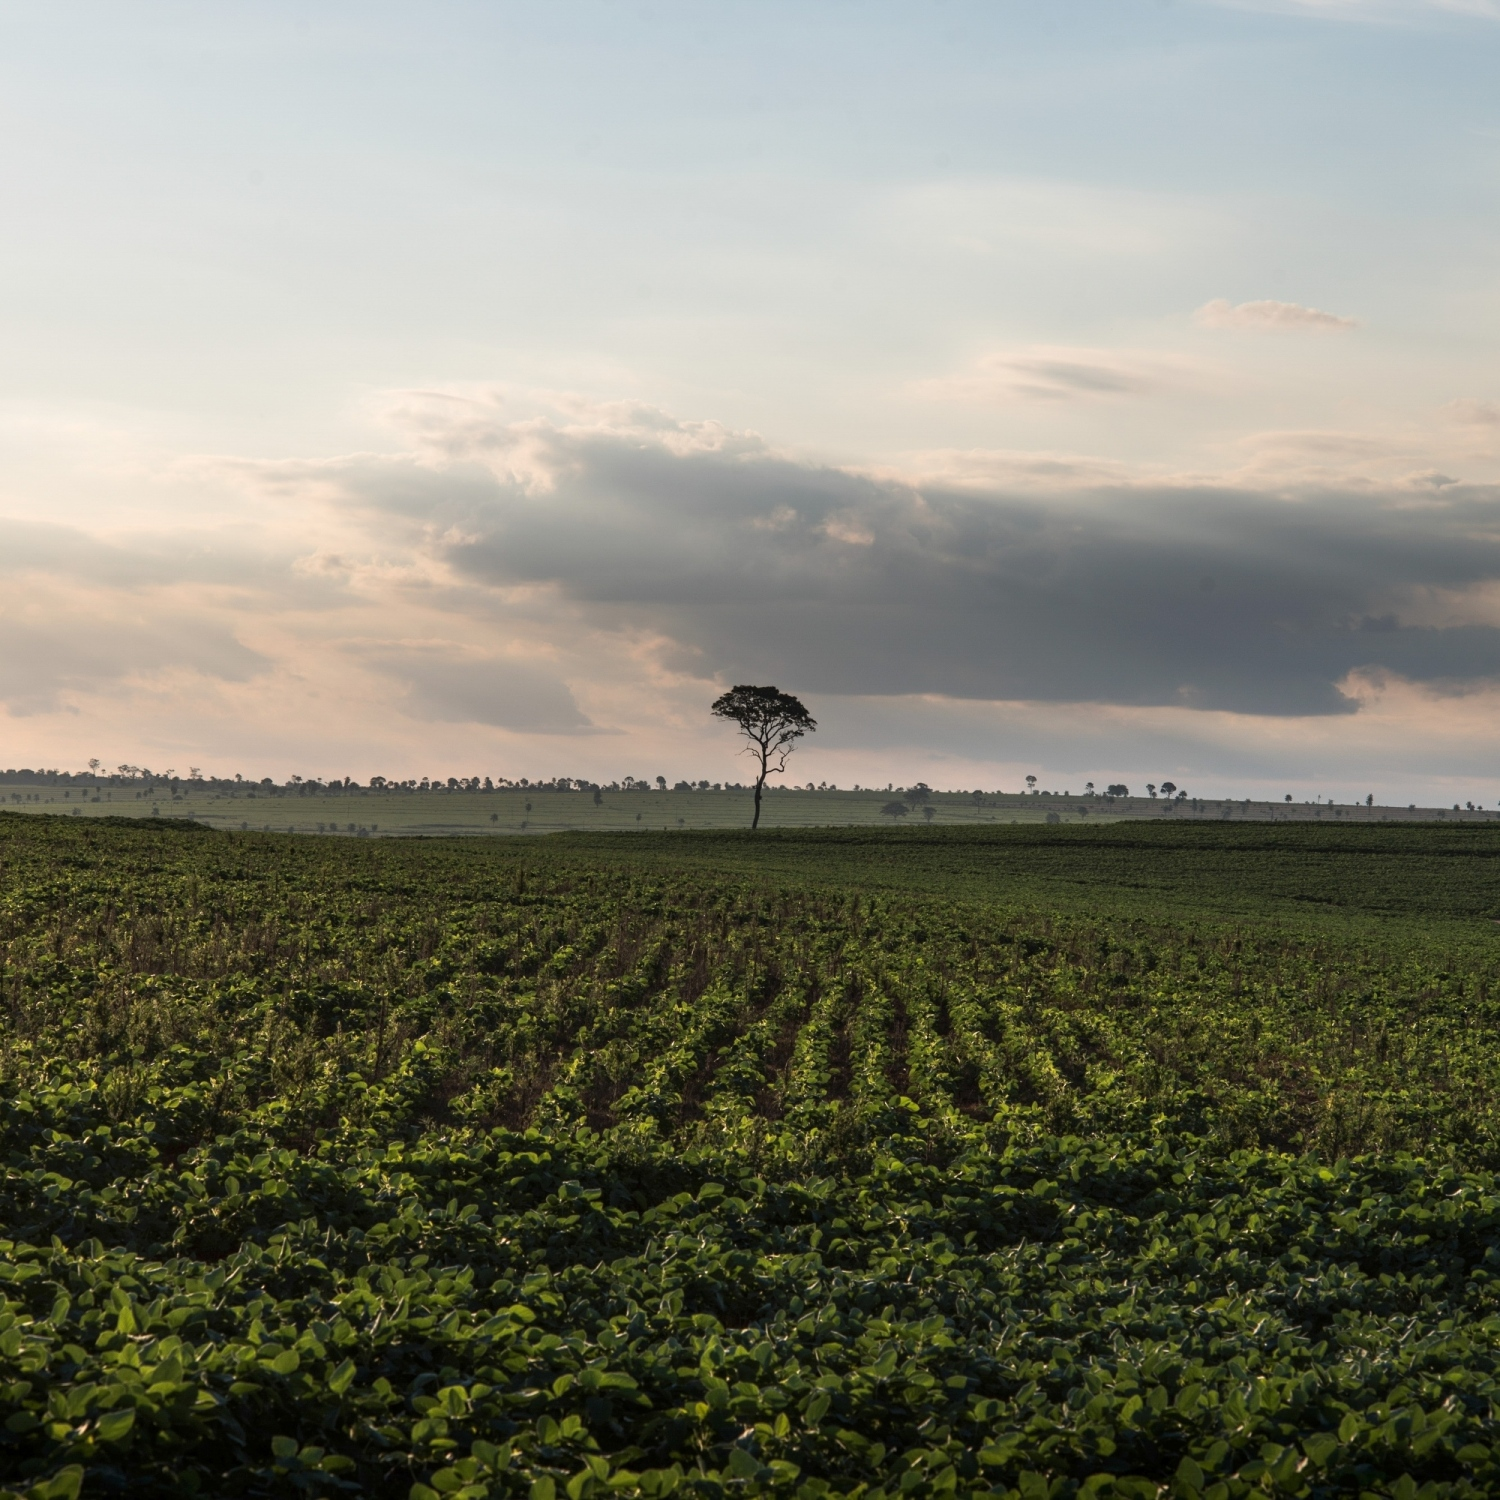 2016. Industrial soy farms have taken over most of the land that was once forested Guarani-Kaiowa territory in Matto Grosso Du Sul. Current plans to build more than 40 dams on the Tapajos River will turn that river into a transportation corridor for Soy from the South of Brazil to the North.